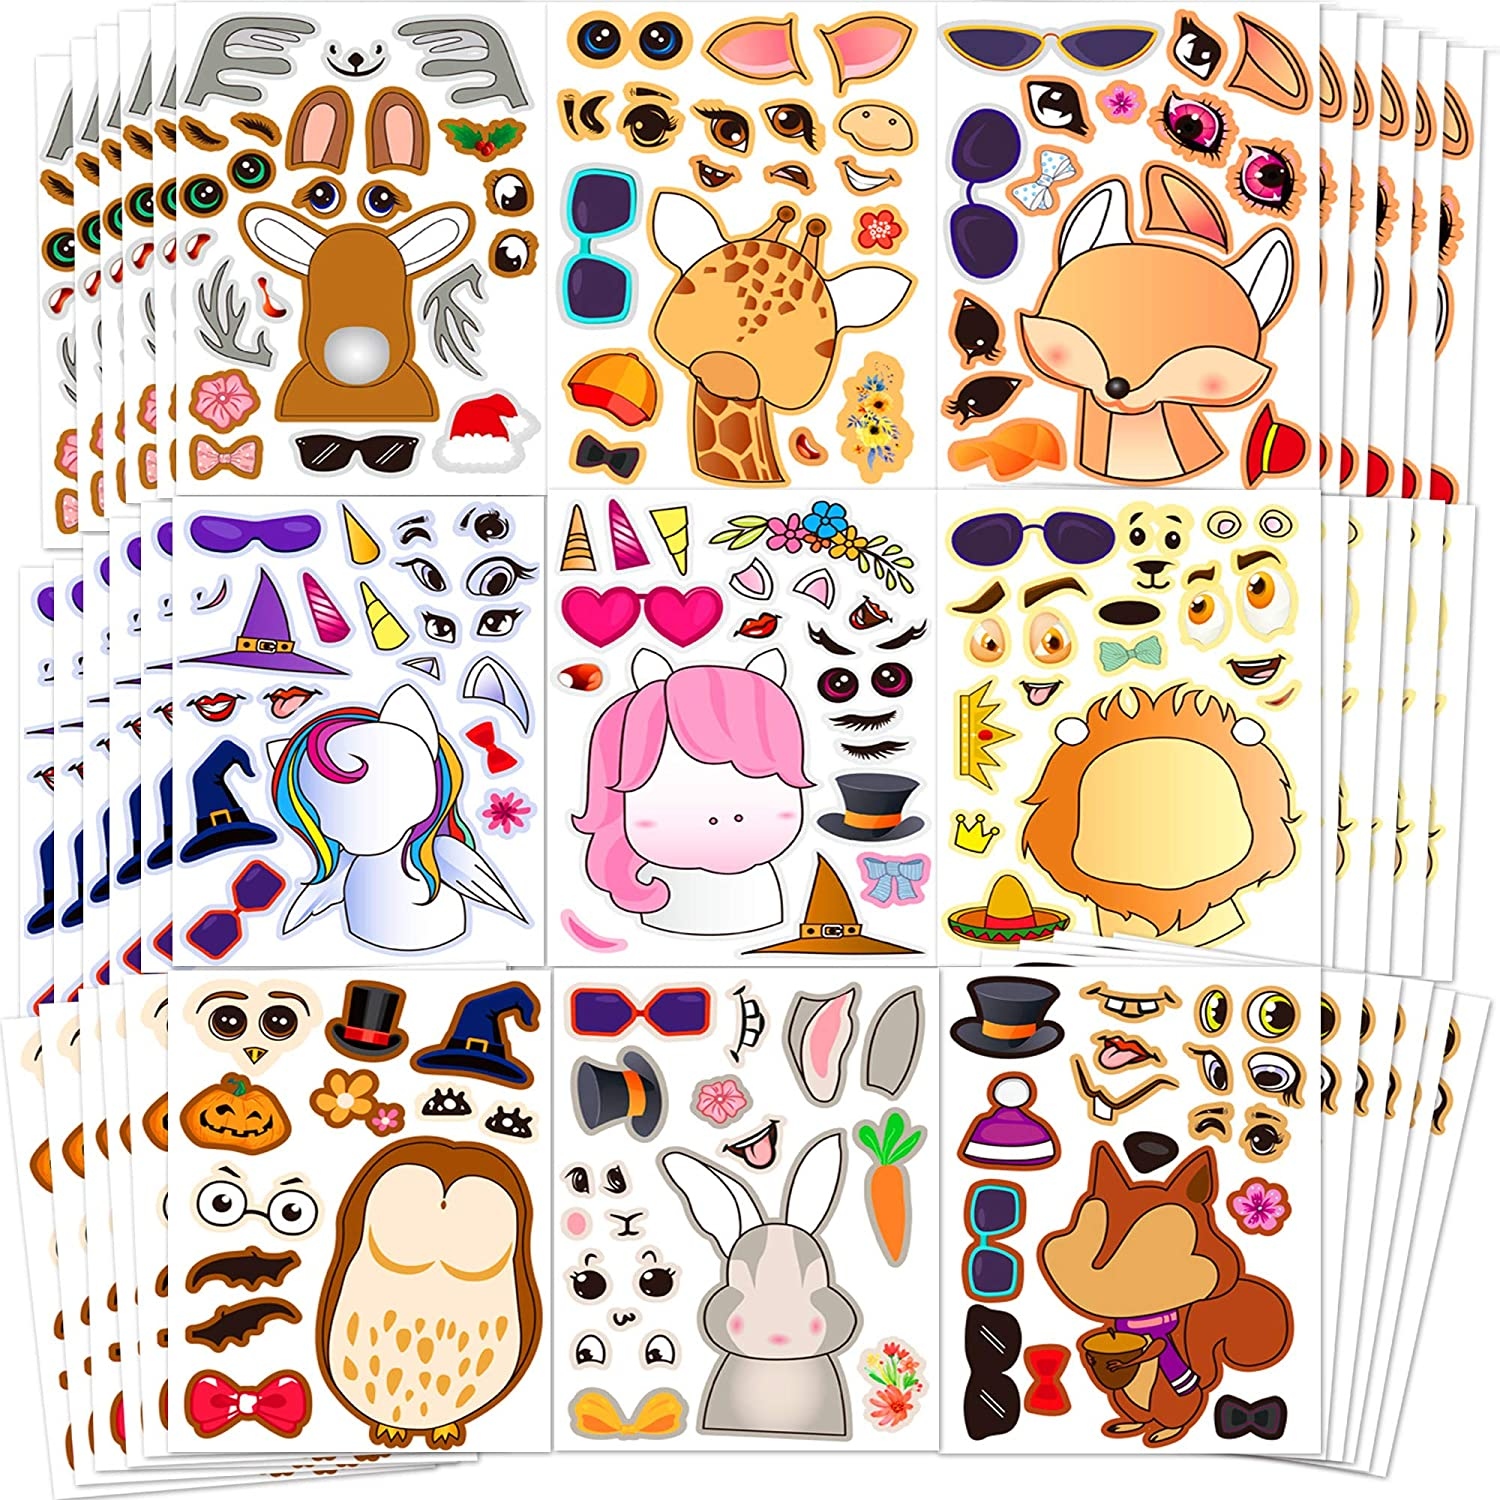 Sinceroduct Make Your Own Stickers,Woodland Teaching Stickers, Make-a-Face Stickers, 100 Pack Party Favor Stickers with 20 Animal Designs, Unique Stickers, Perfect as Reward&Gift for Kids